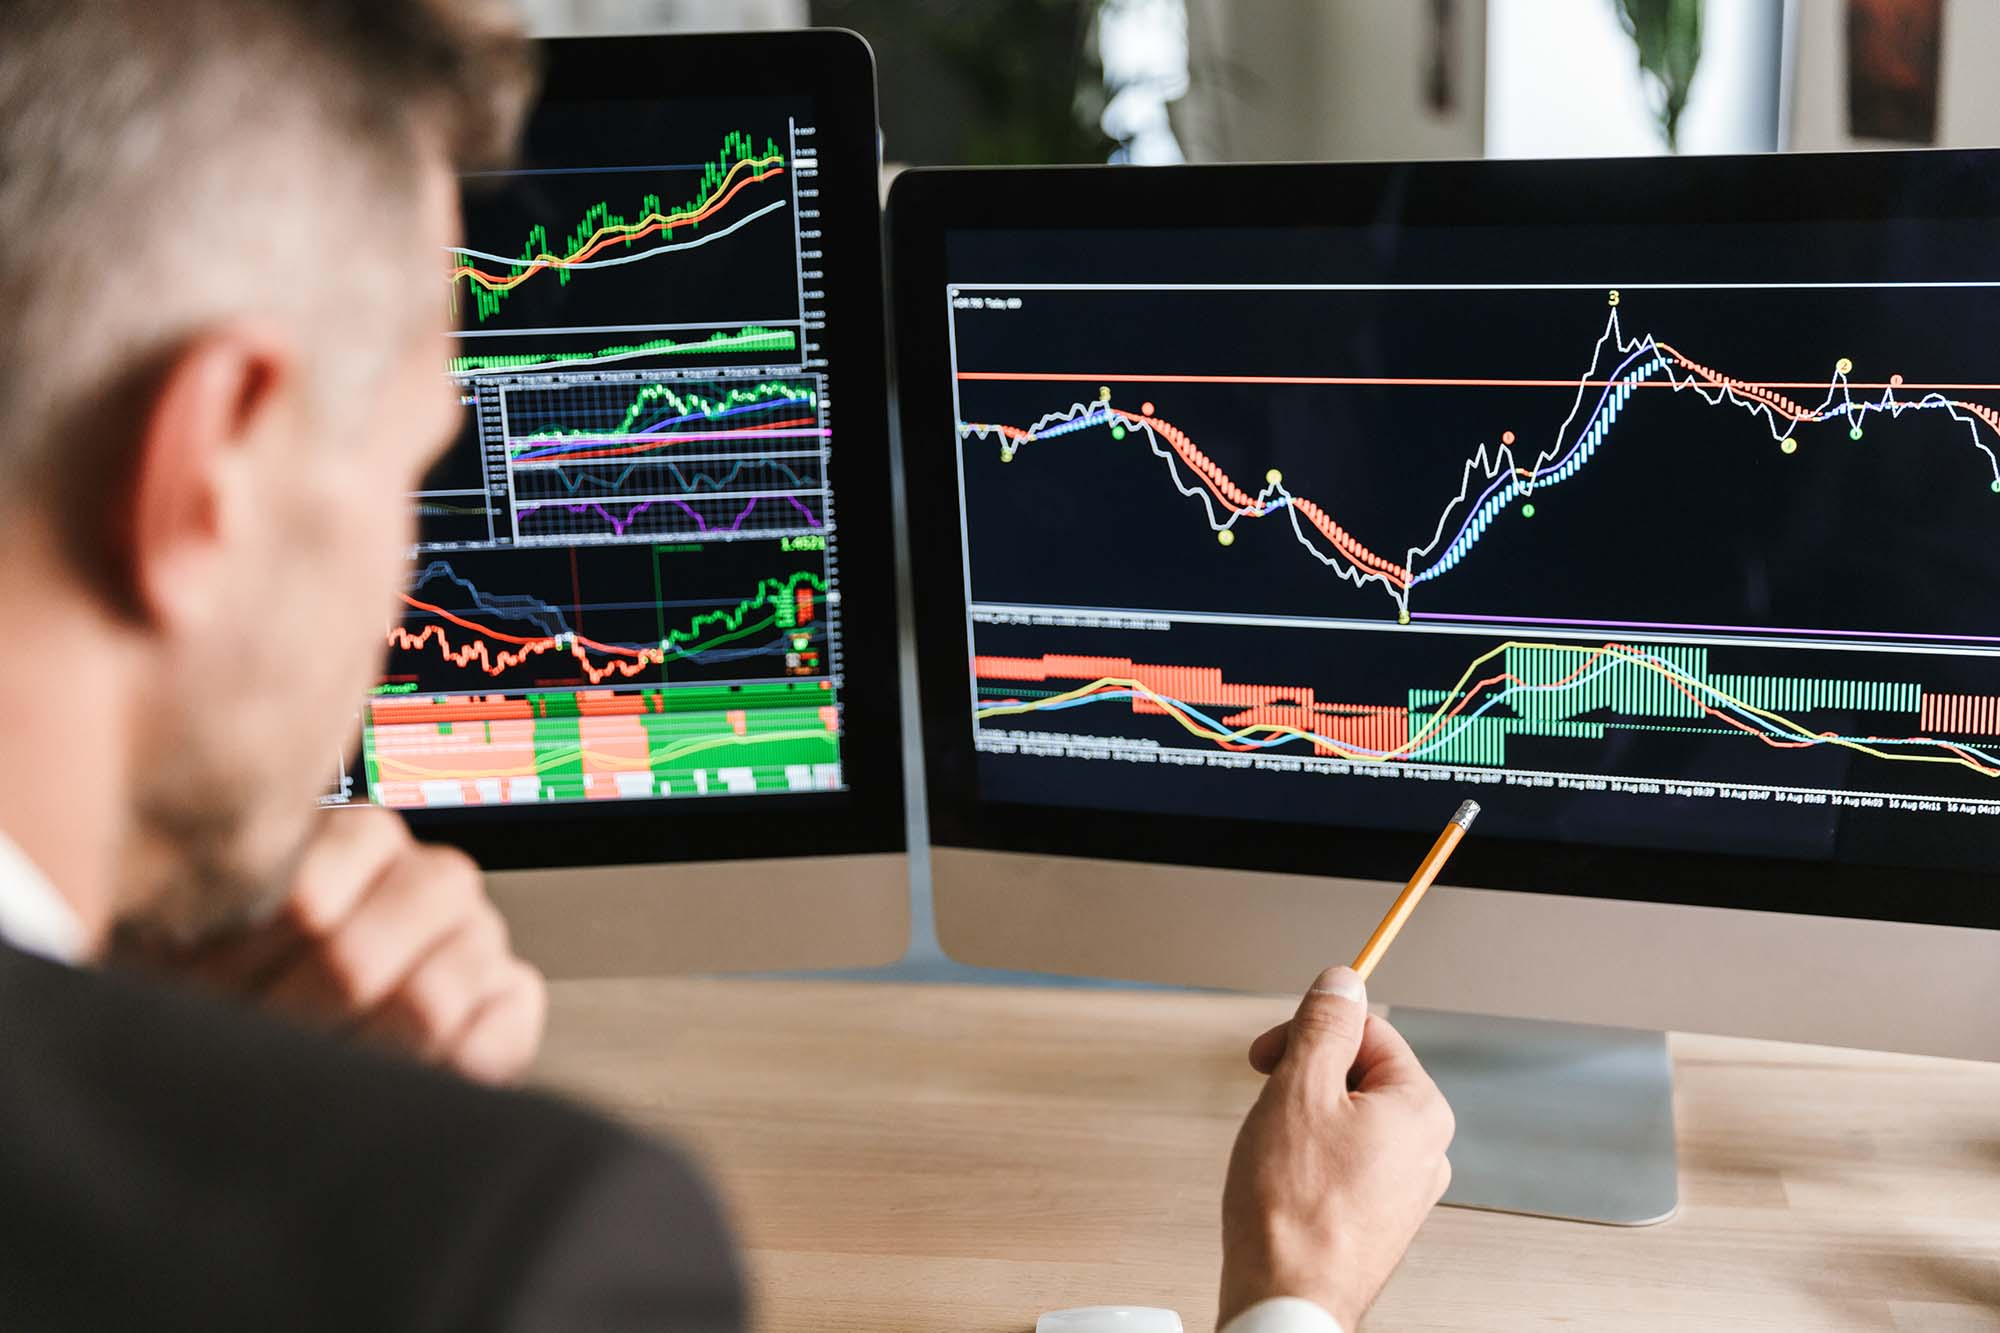 5 Things You Should Learn from Successful Forex Traders